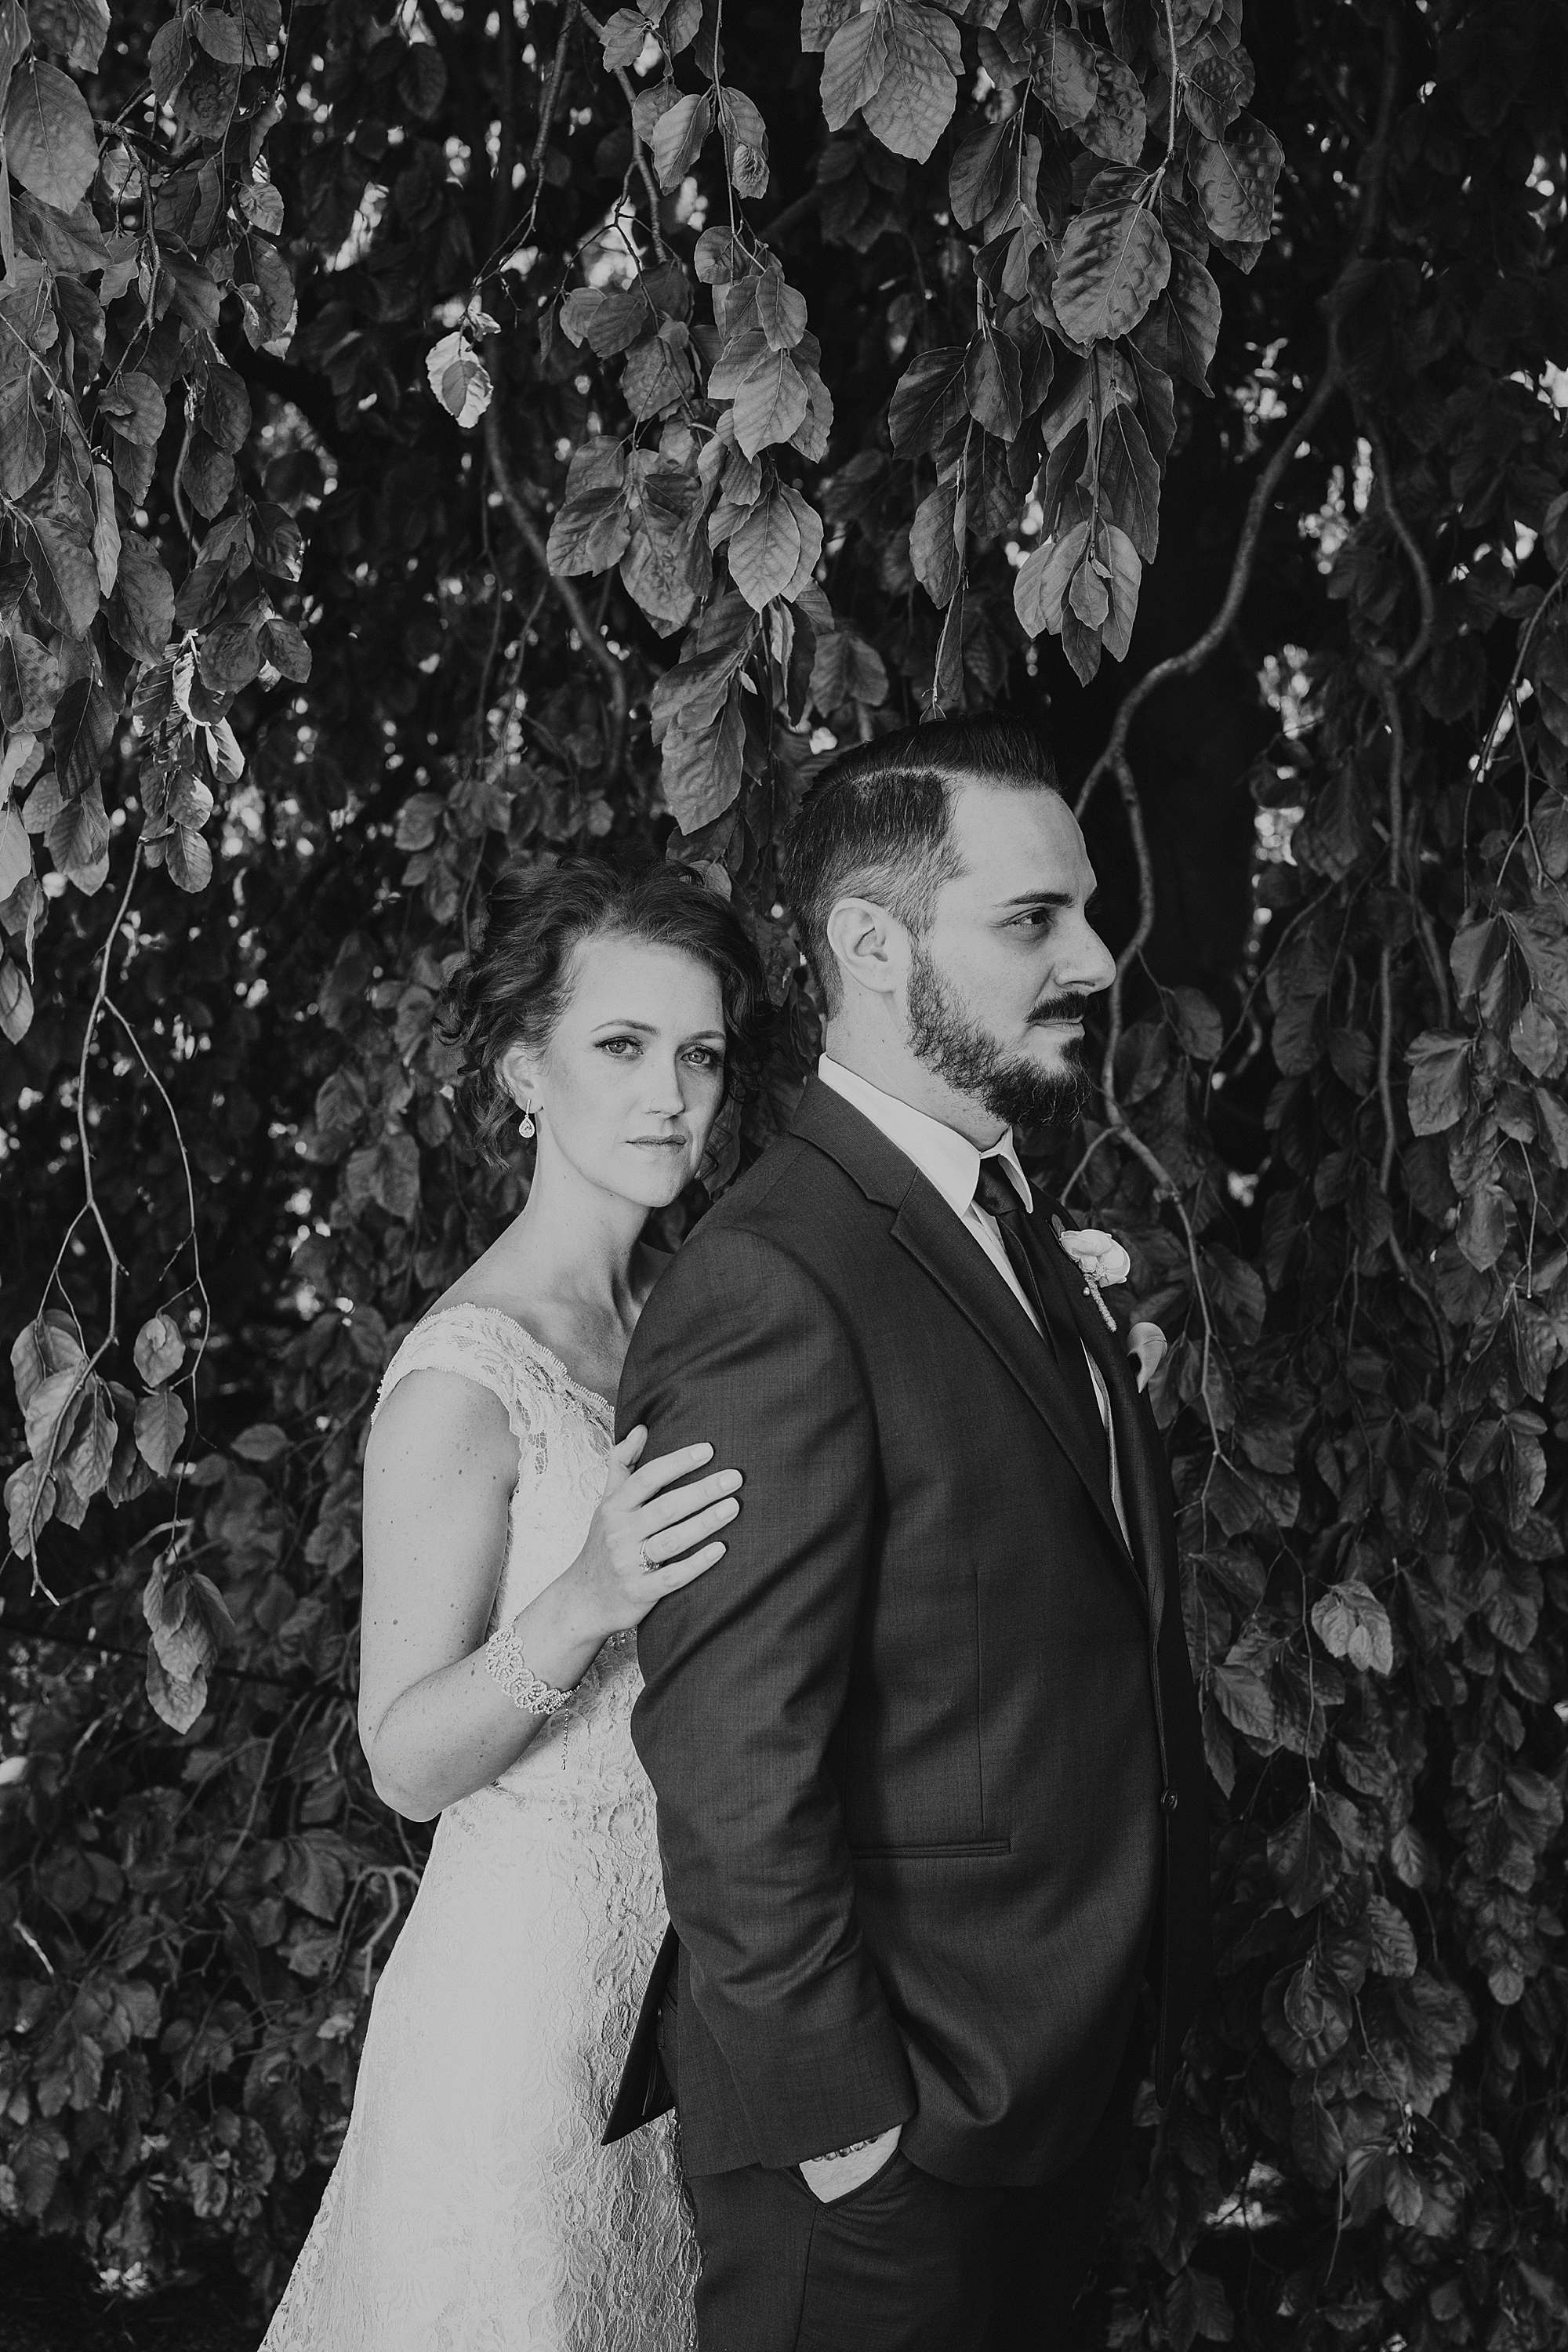 Megan and Daniel_Northbrook_Marketplace_Longwood_Gardens_Chester_County_Unionville_Love_by_Joe_Mac_Wedding_photography__0038.jpg